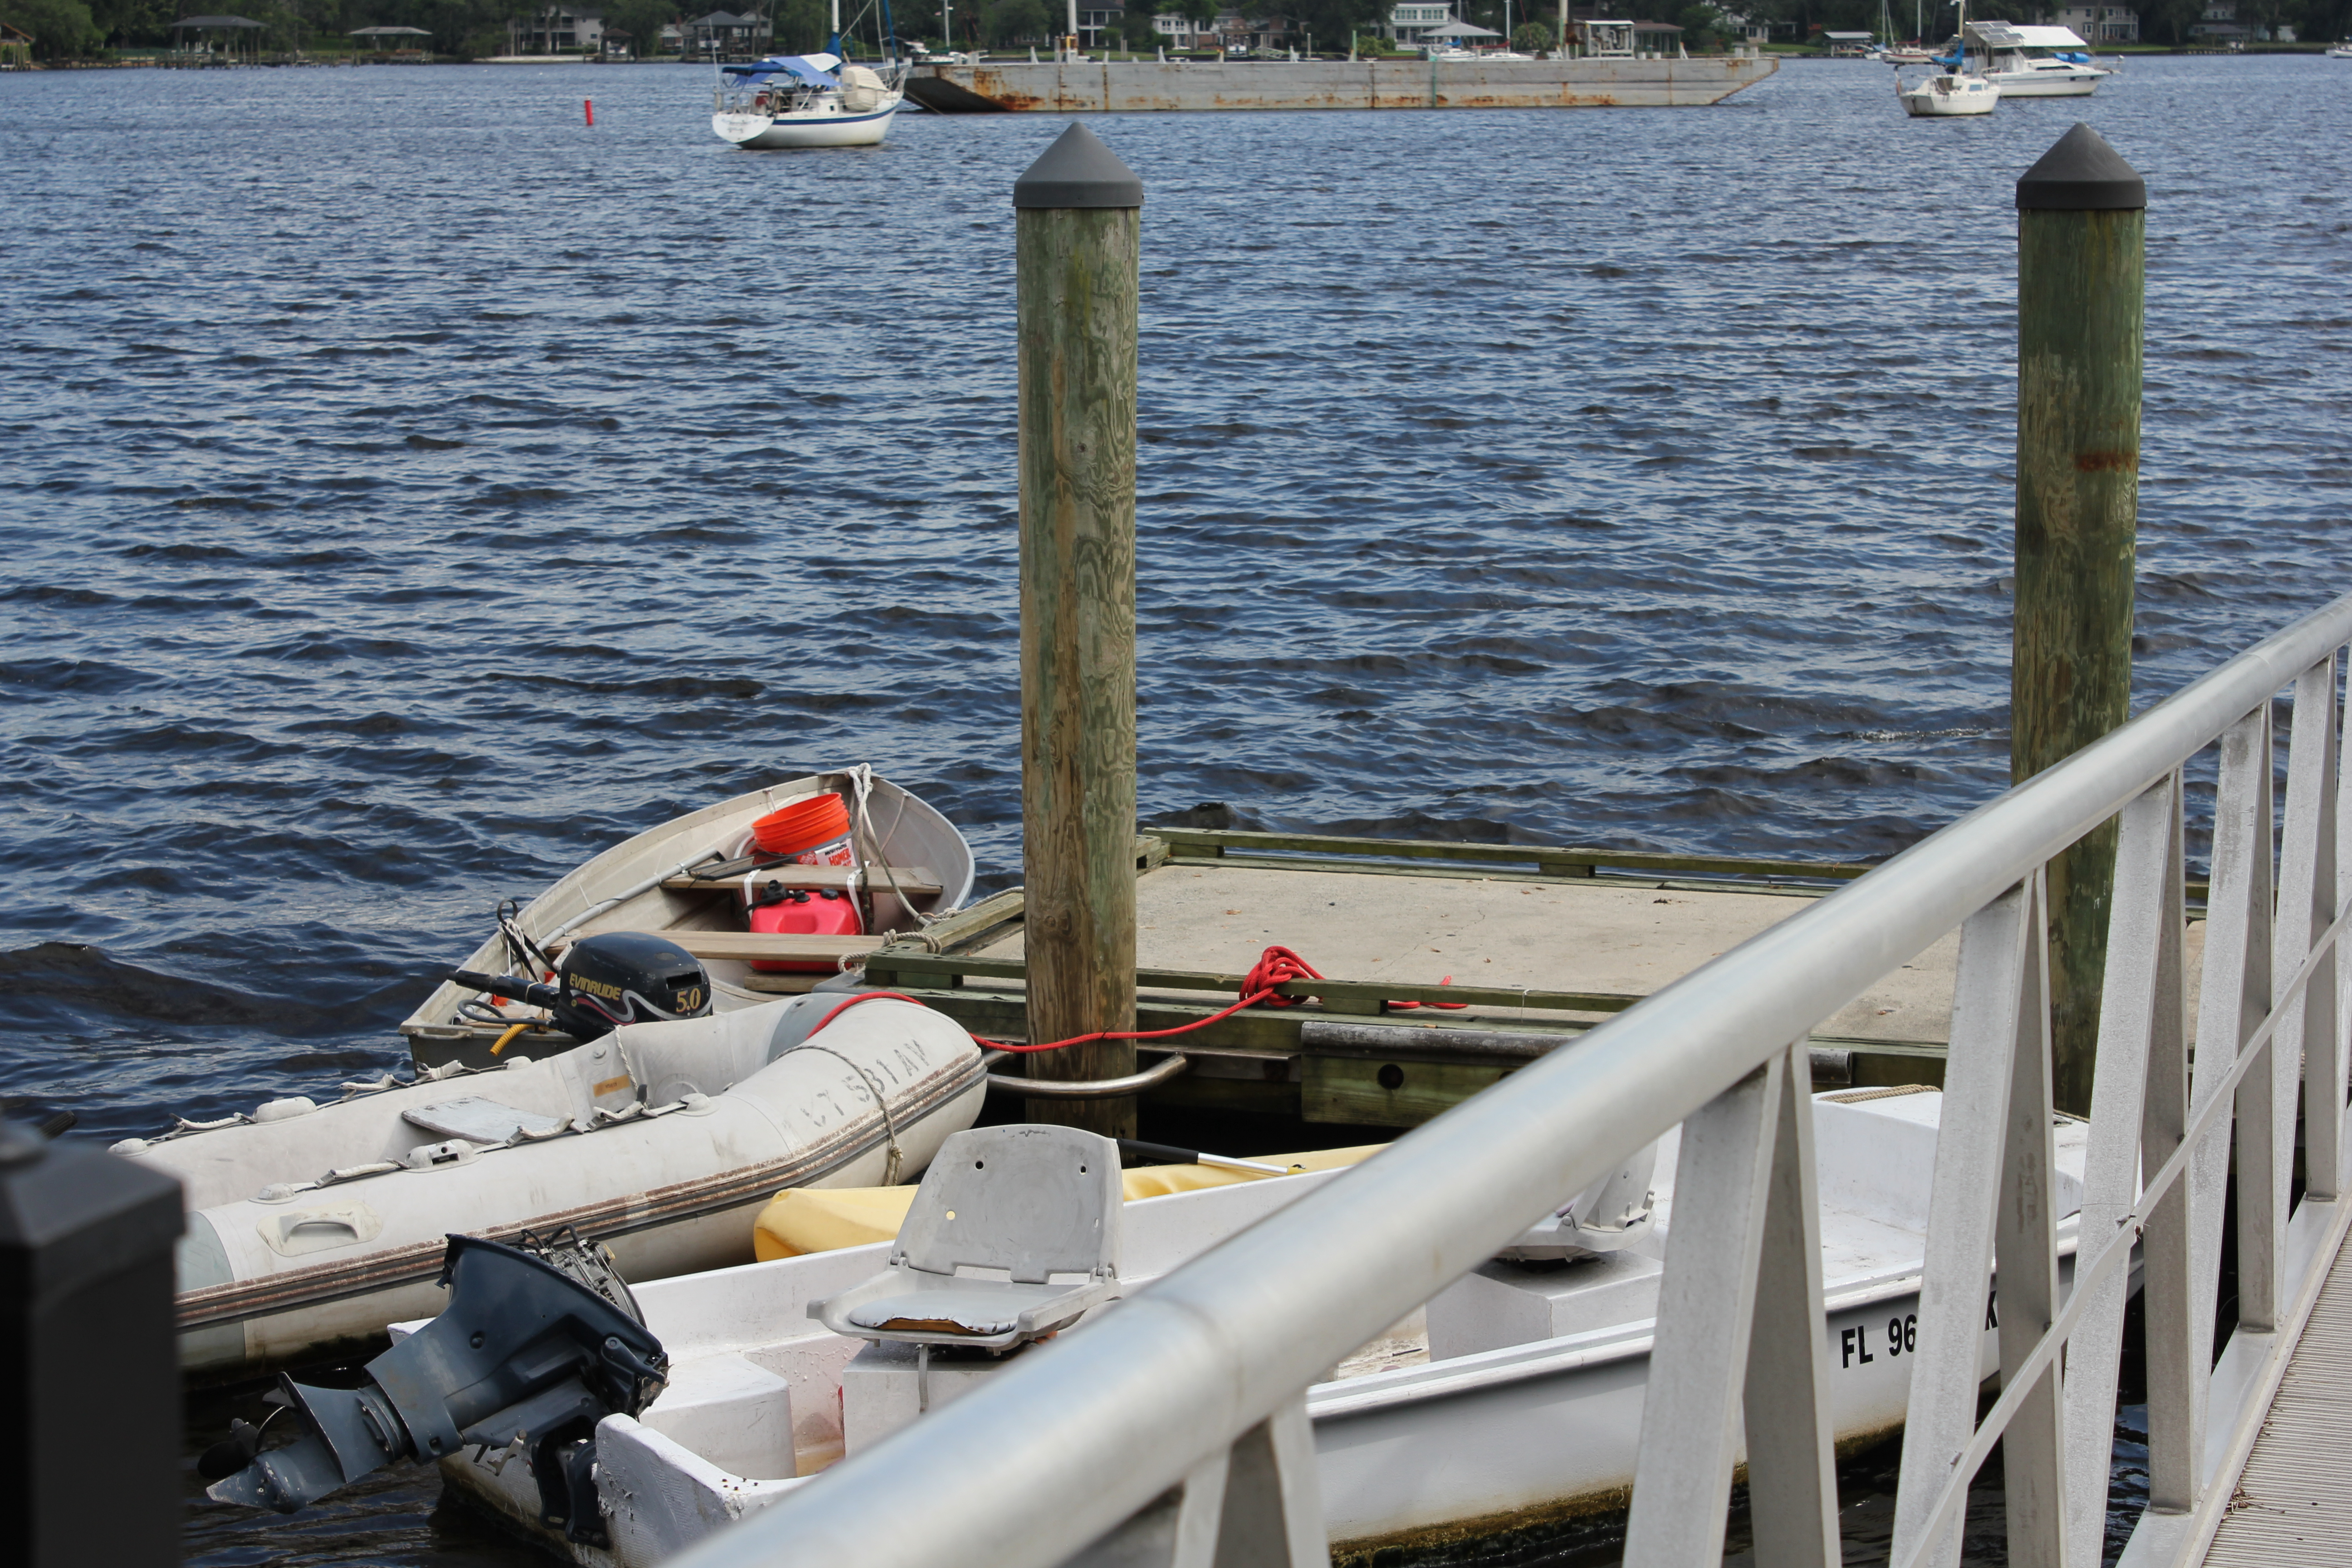 Squatters in Jacksonville Waters | FLORIDA FIELD NOTES